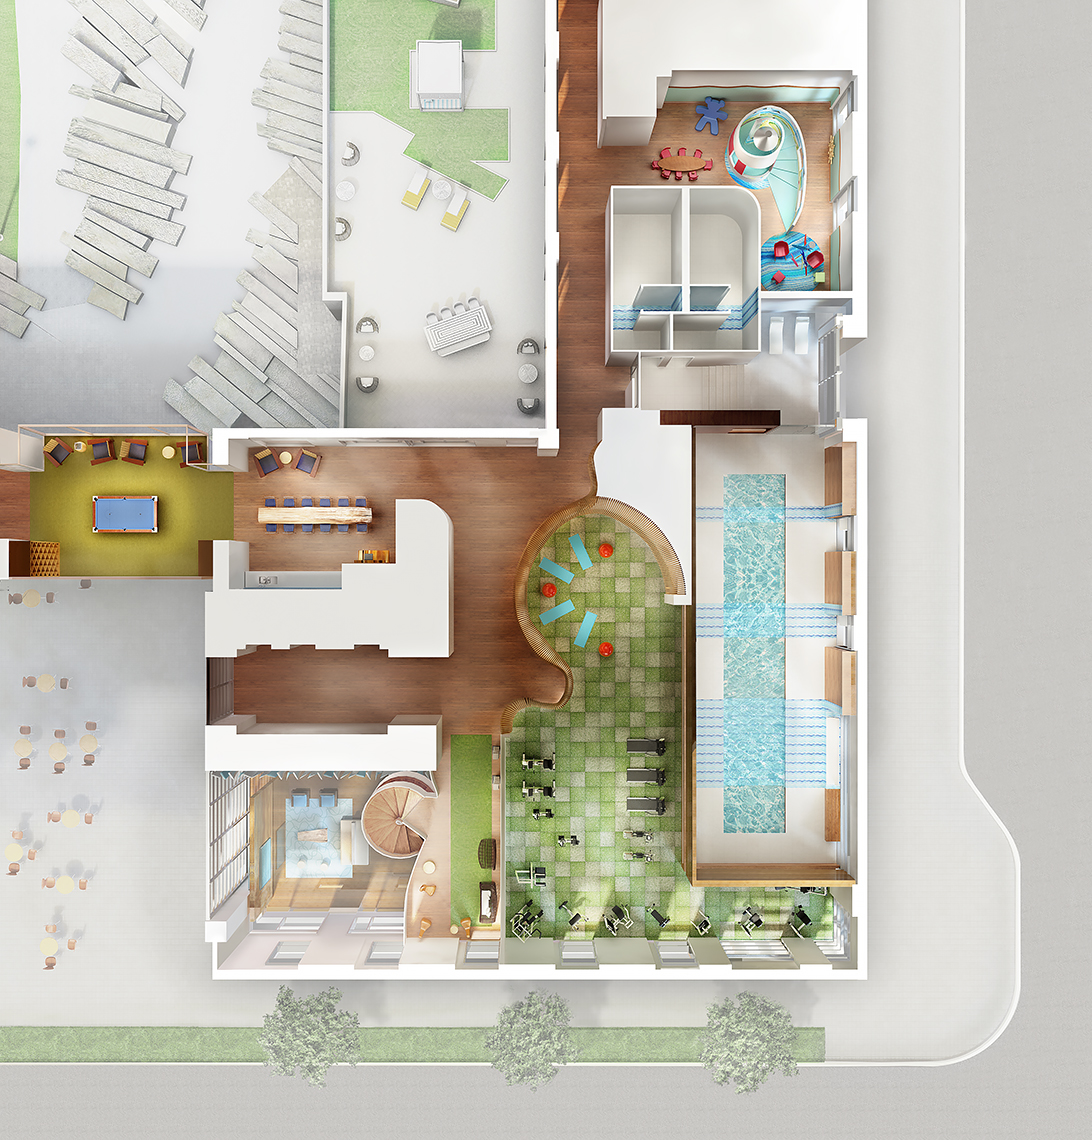 Riverhouse_Amenities-Plan